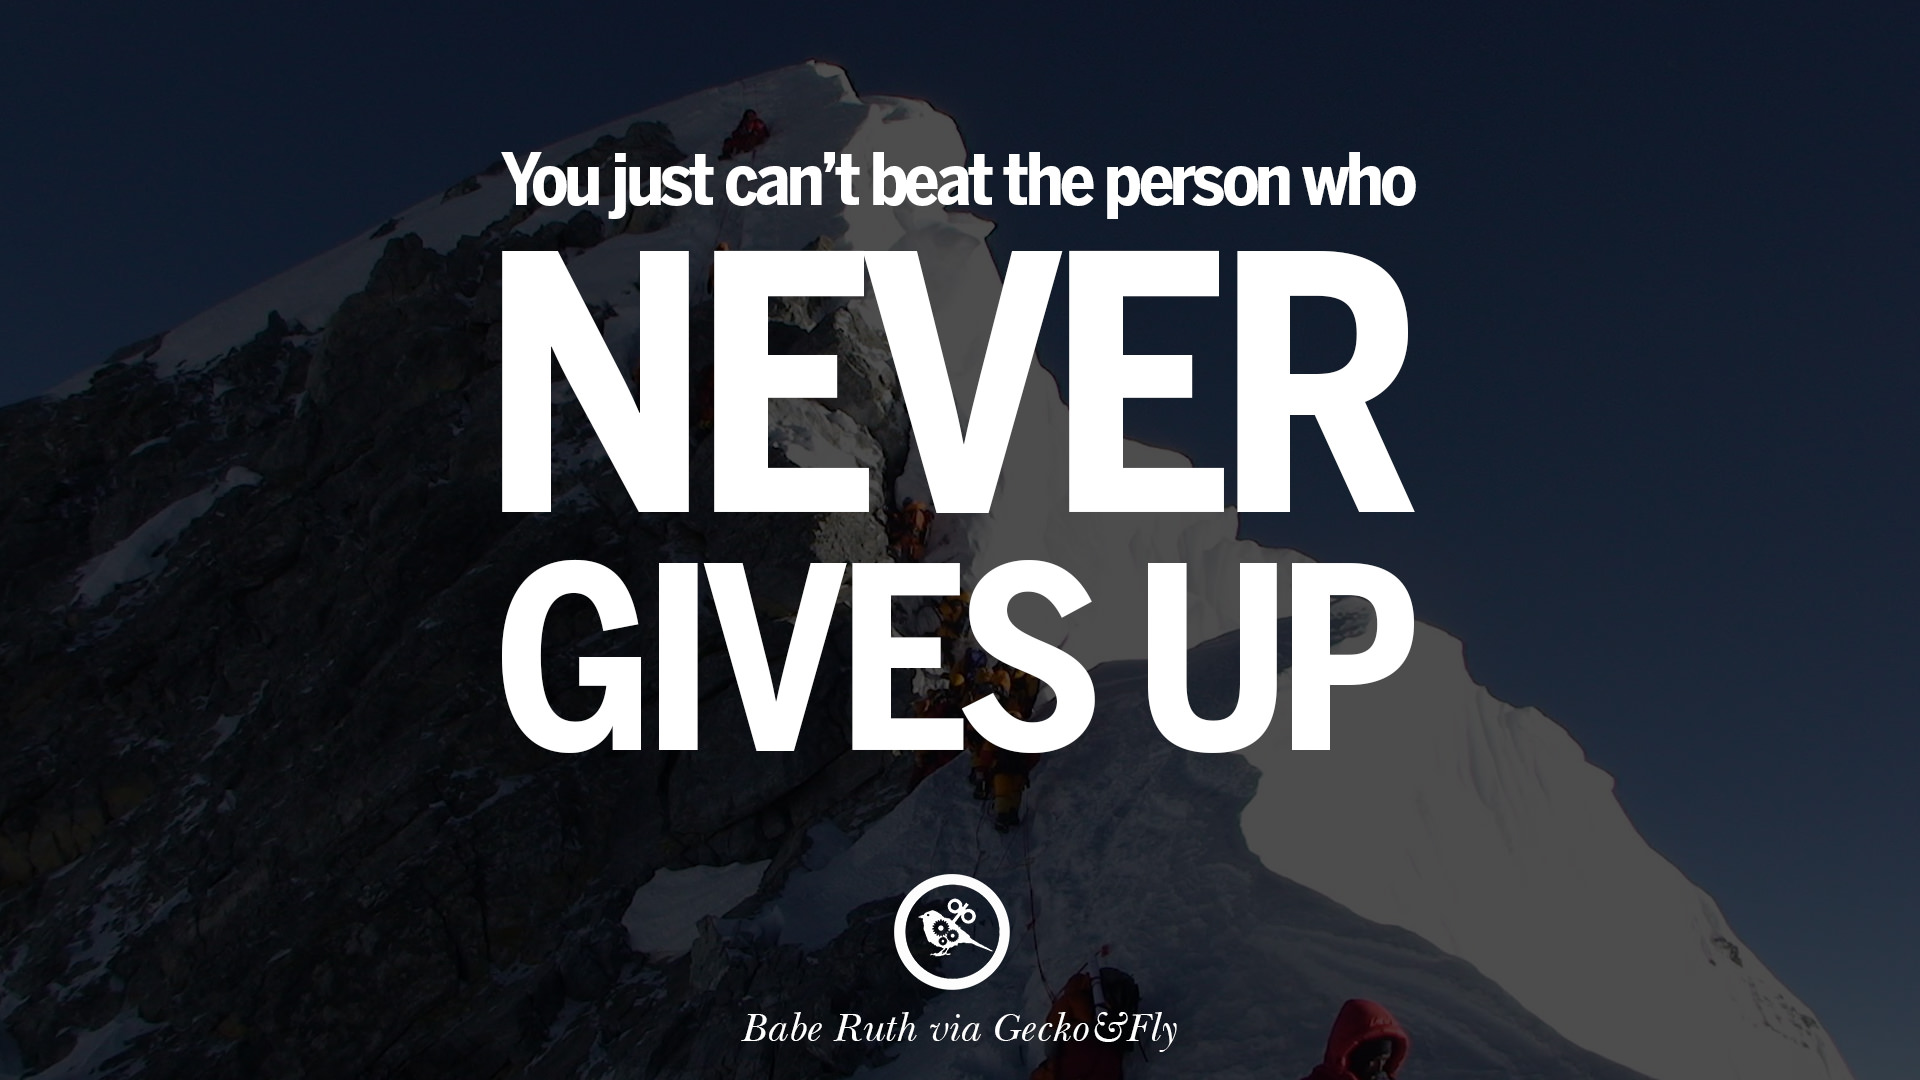 20 Encouraging And Motivational Poster Quotes On Sports And Life